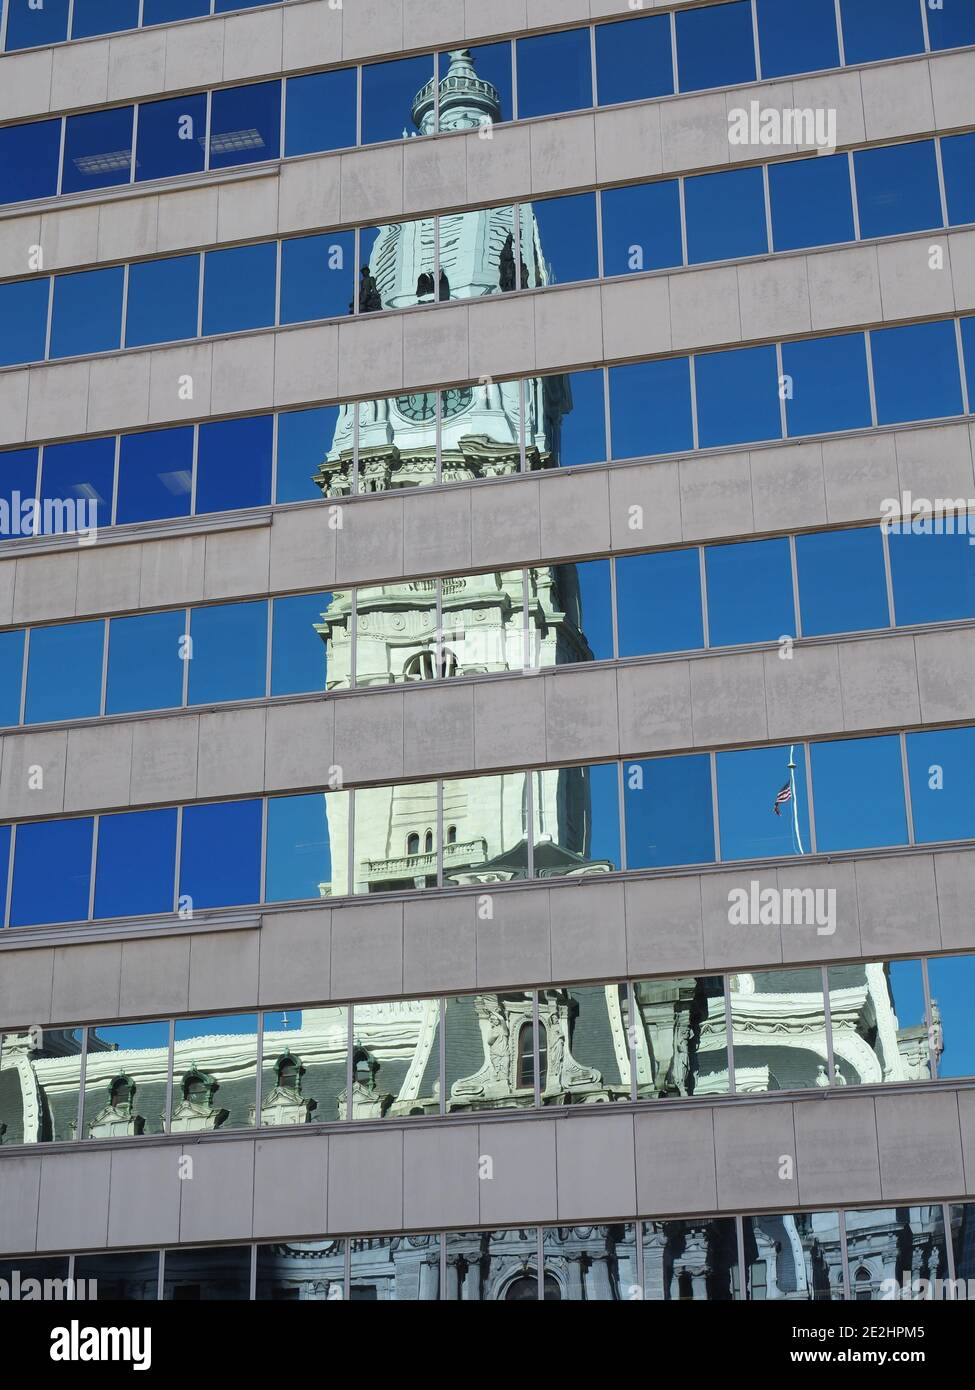 Image of the Philadelphia City Hall reflecting on nearby buildings. Stock Photo